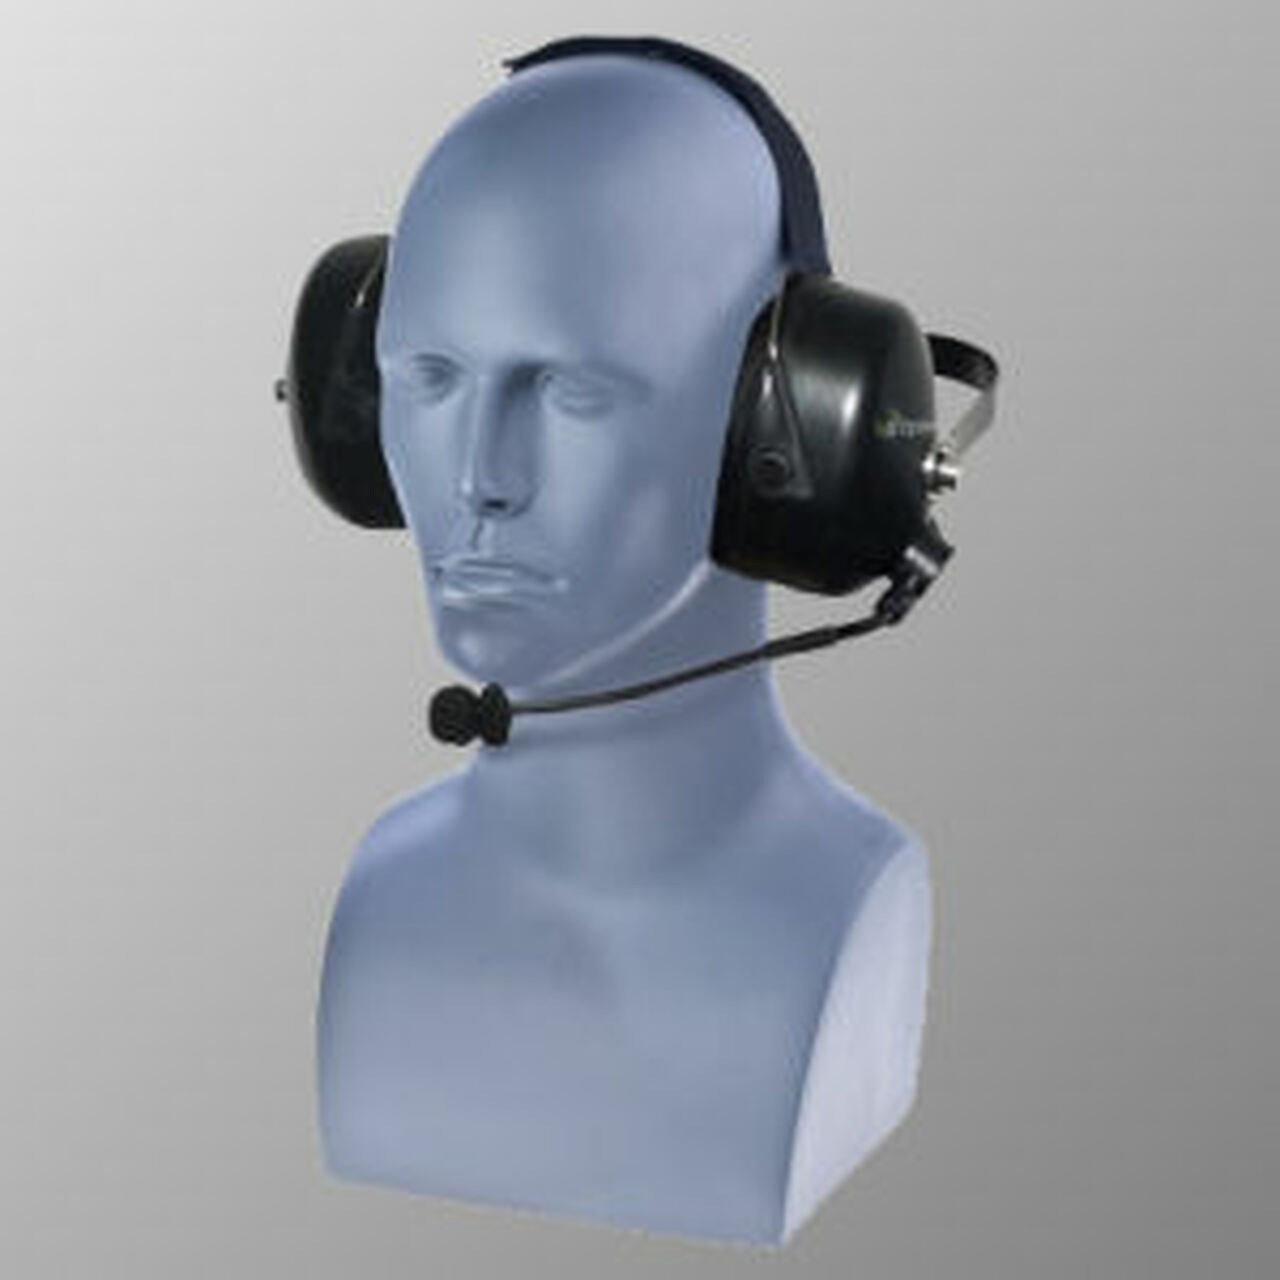 Bendix King GPH5102XP-CMD Noise Canceling Double Muff Behind The Head Headset